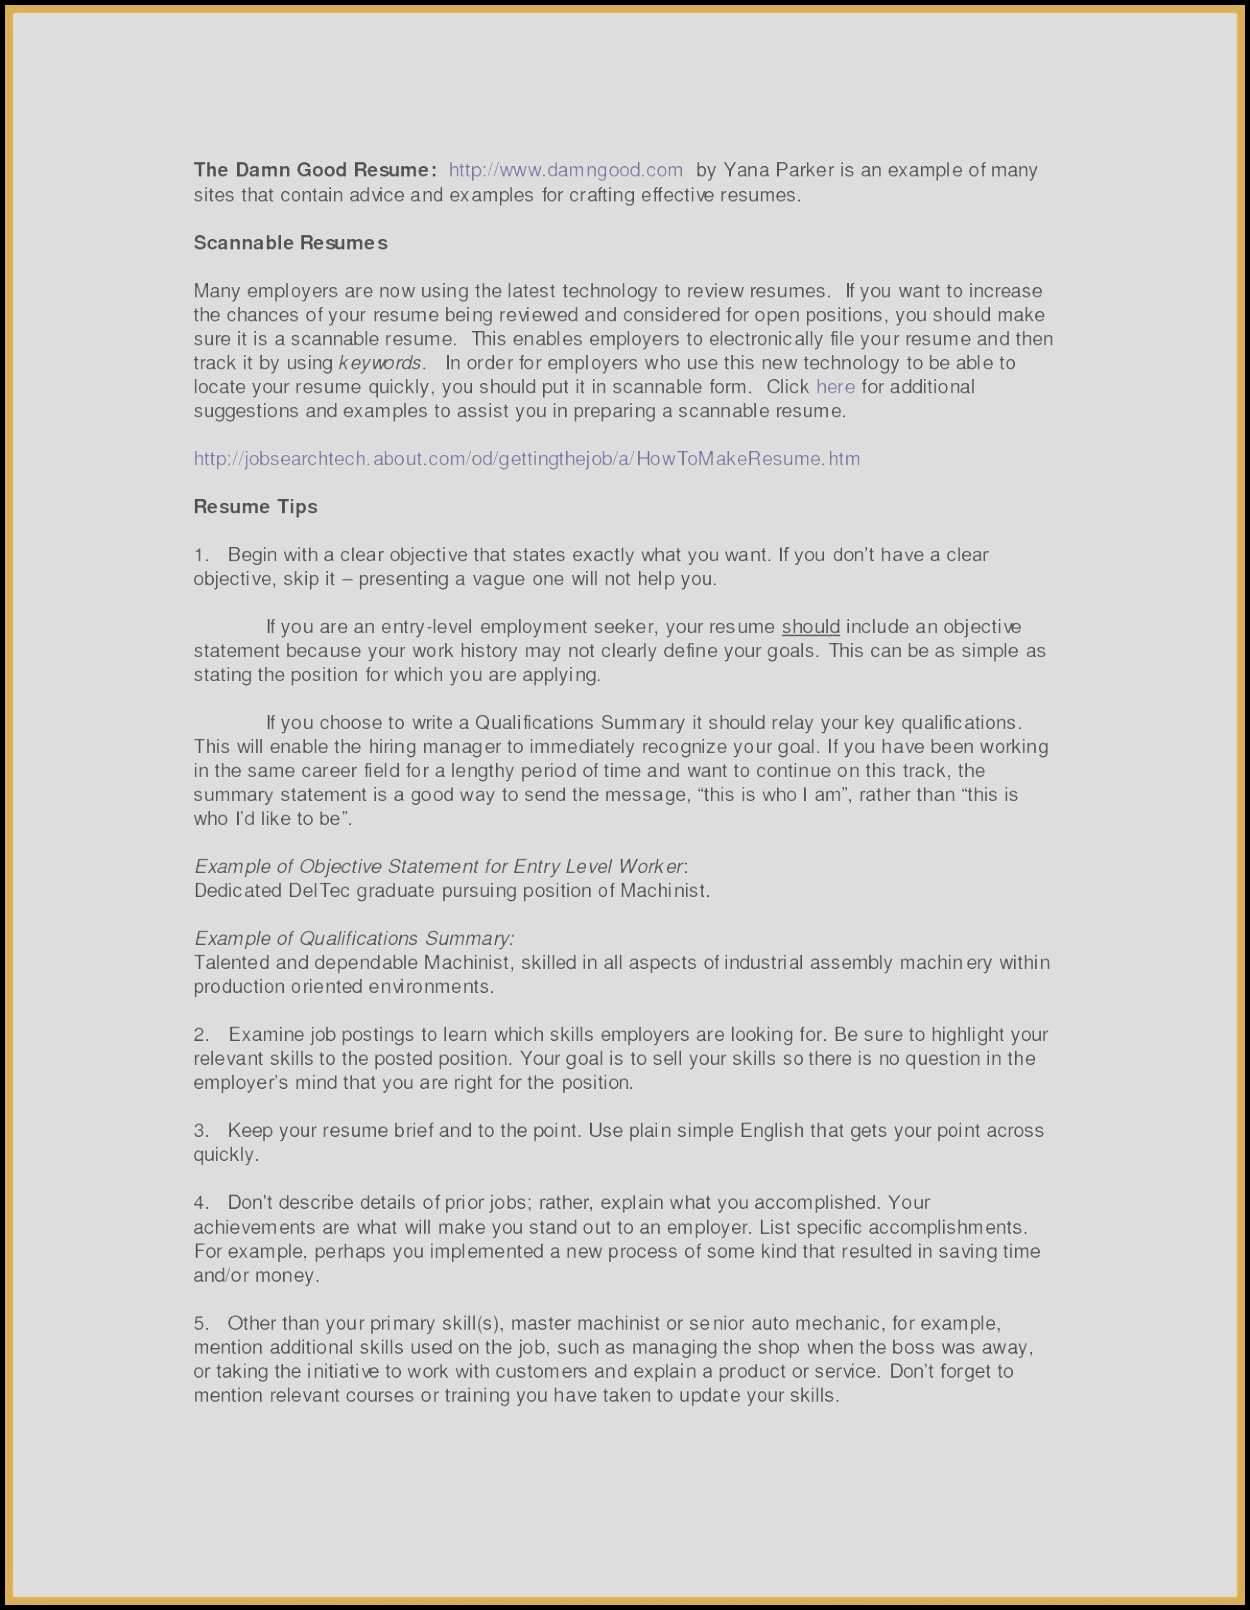 Make Your Resume Stand Out - Cash Out Letter Template Cv Templates 36 Inspirational How to Make